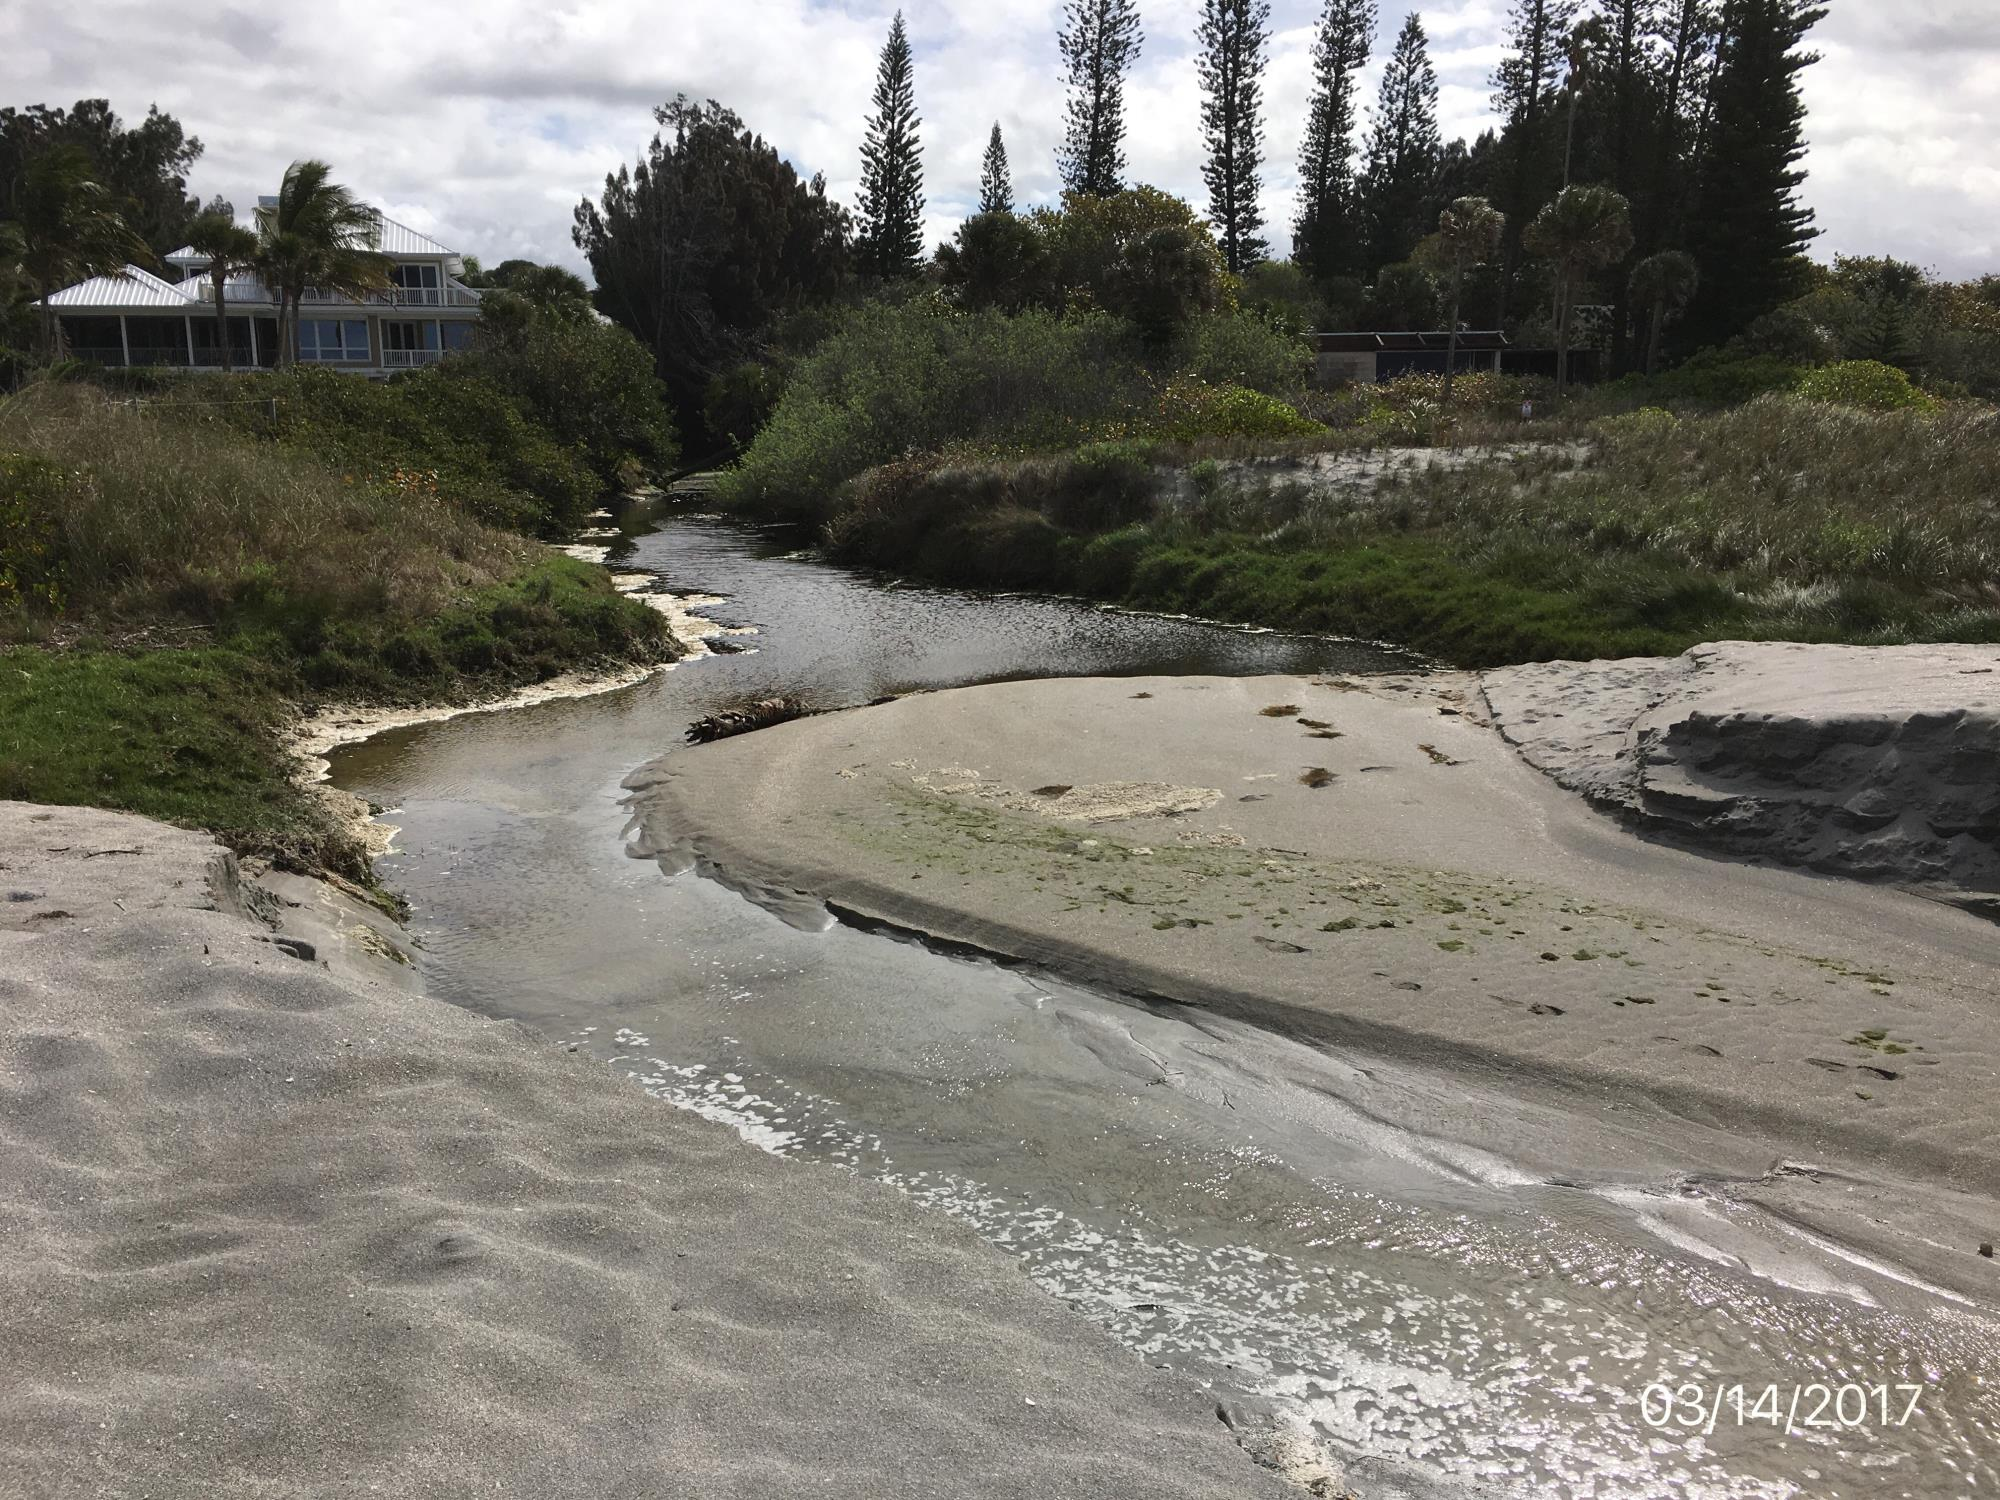 Outfall with stormwater flowing to the ocean